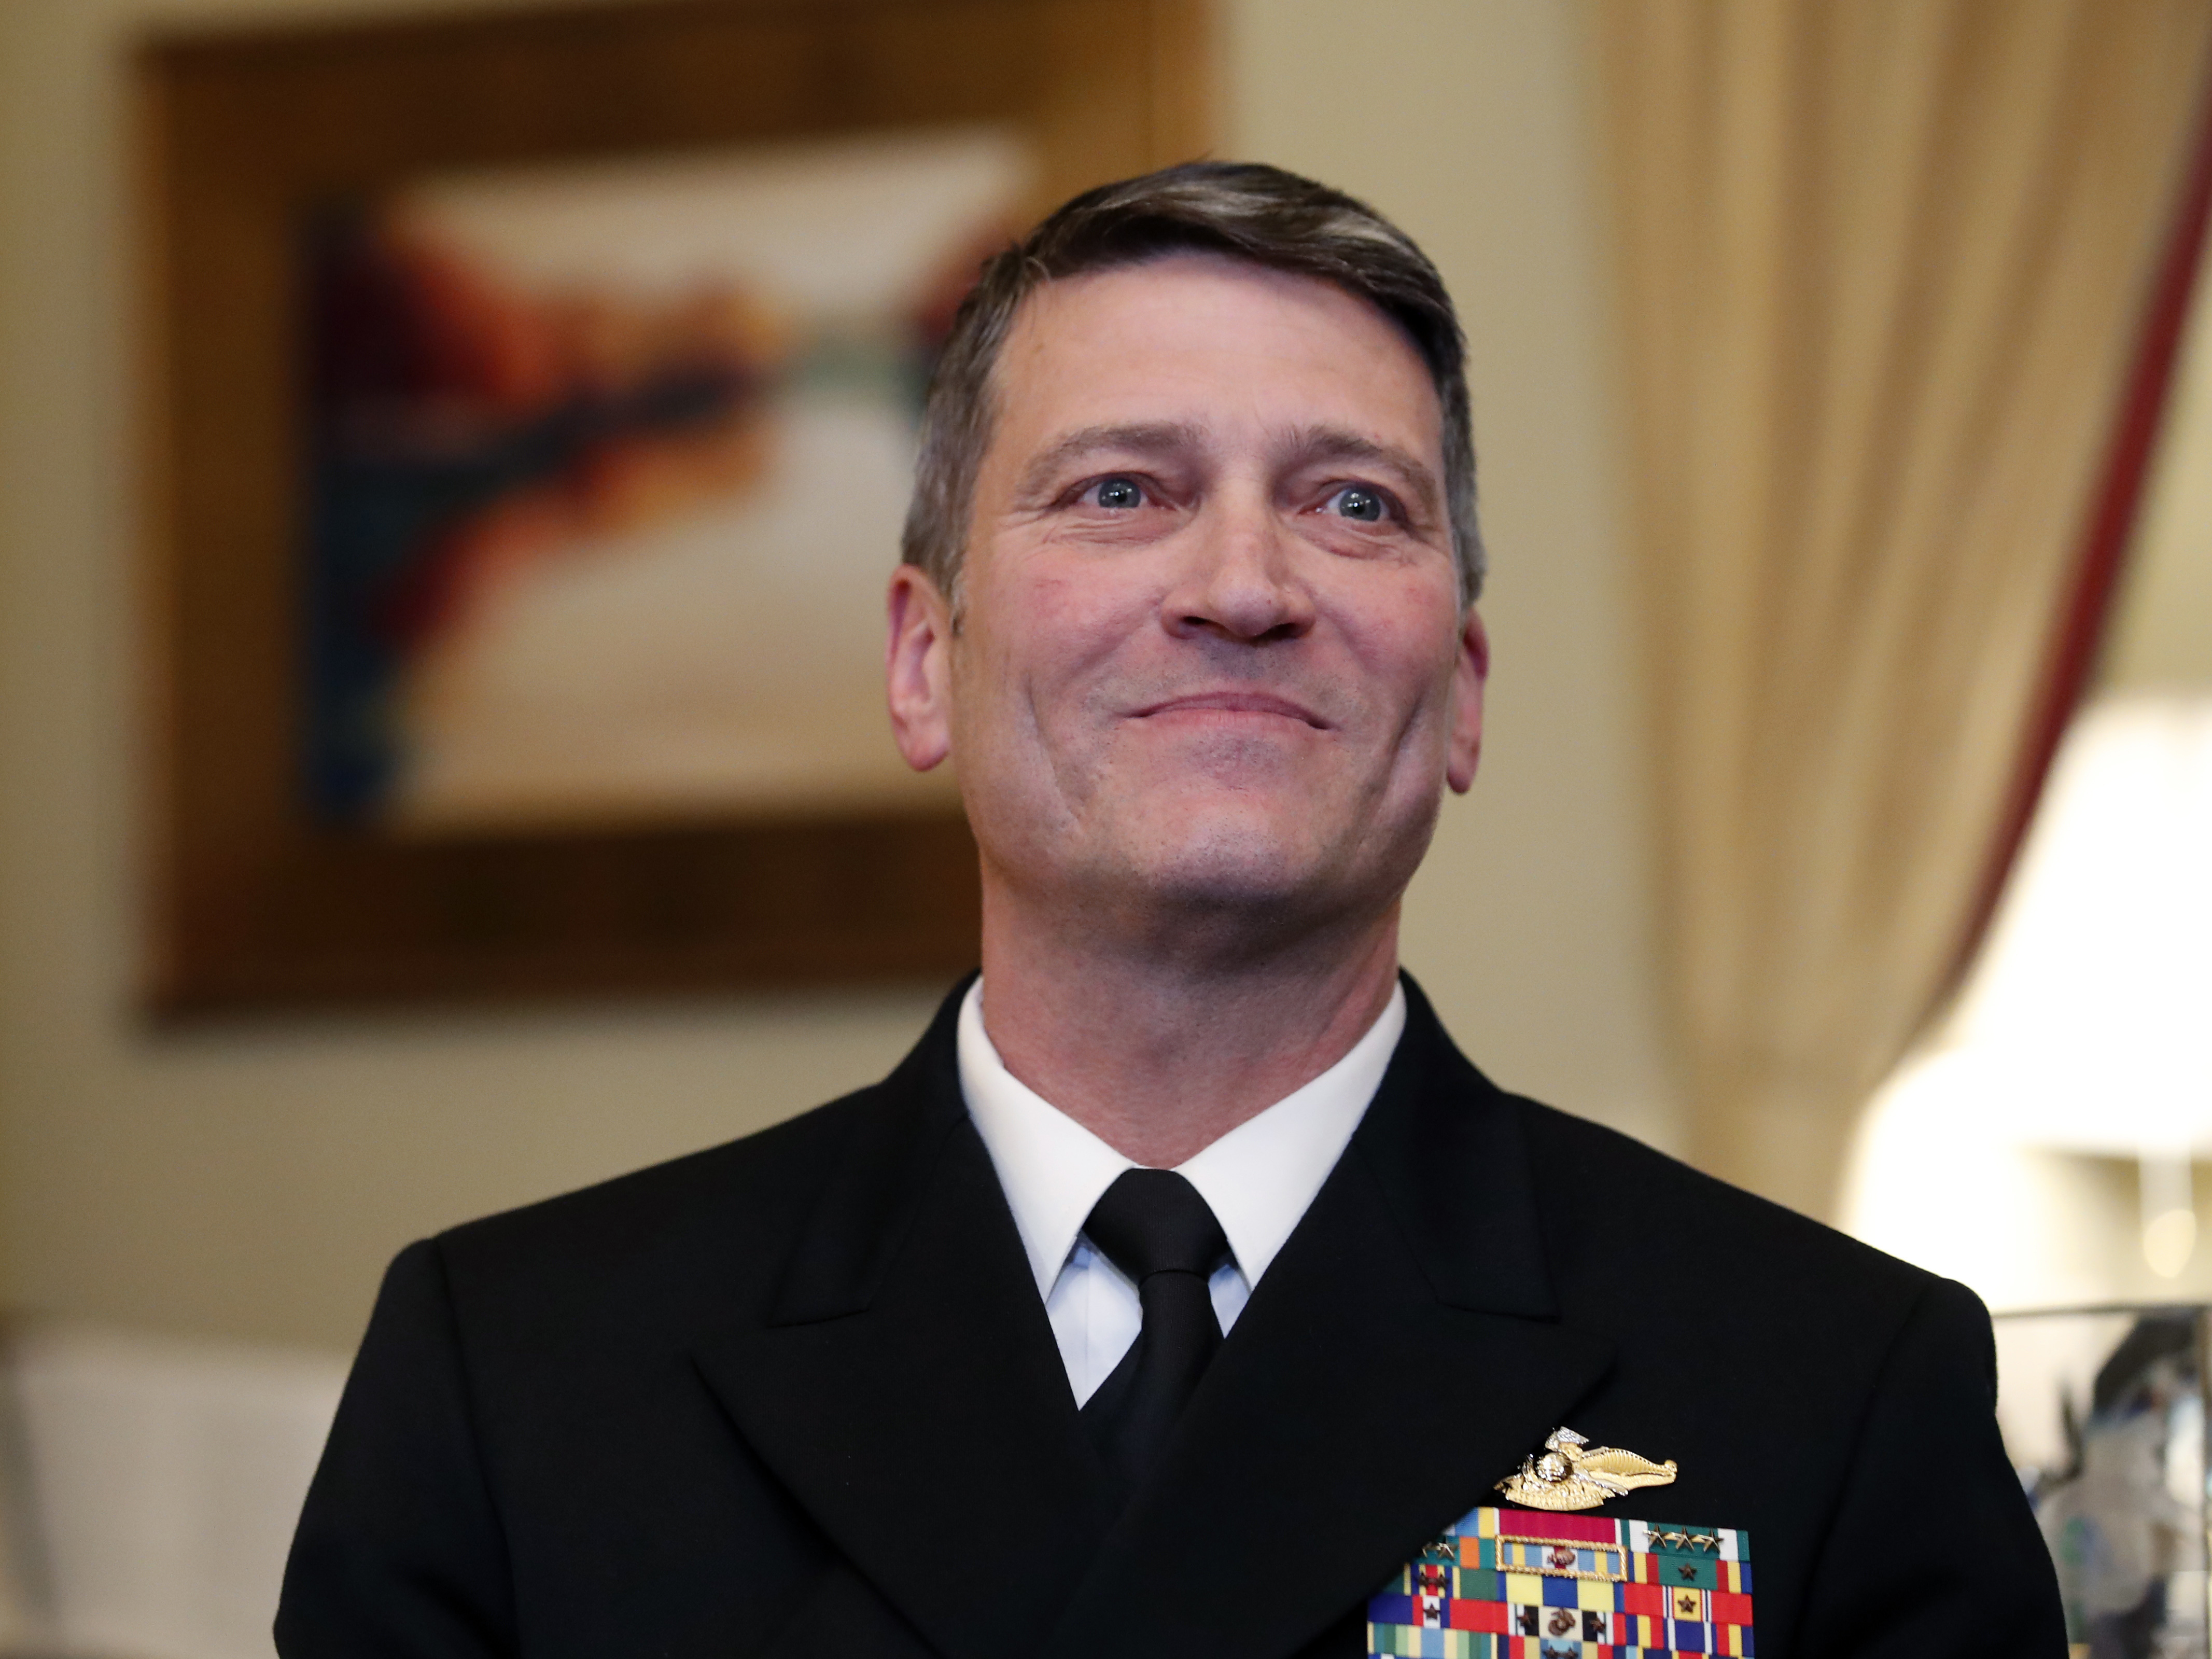 U.S. Navy Rear Adm. Ronny Jackson's nomination appears in jeopardy amid